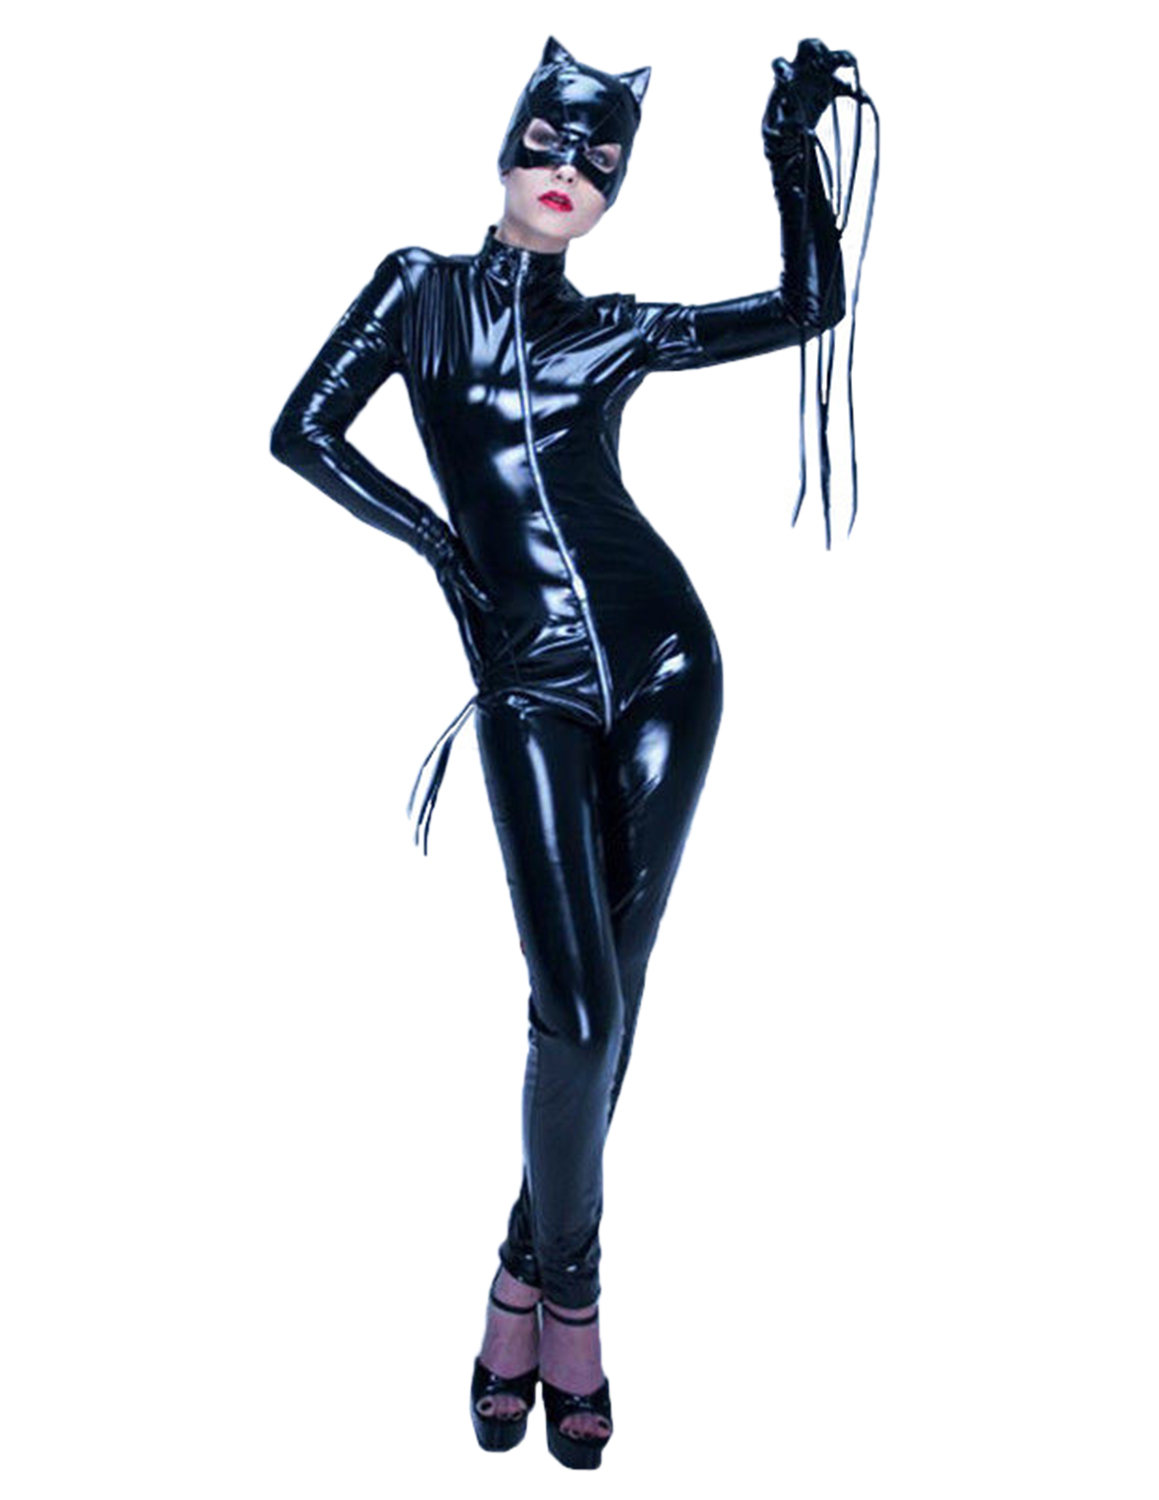 Womenu0027s Girl Catsuit Bodysuit Full Body One Piece Zip Up Front Catwoman Costume  sc 1 st  eBay & Womenu0027s Girl Catsuit Bodysuit Full Body One Piece Zip Up Front ...